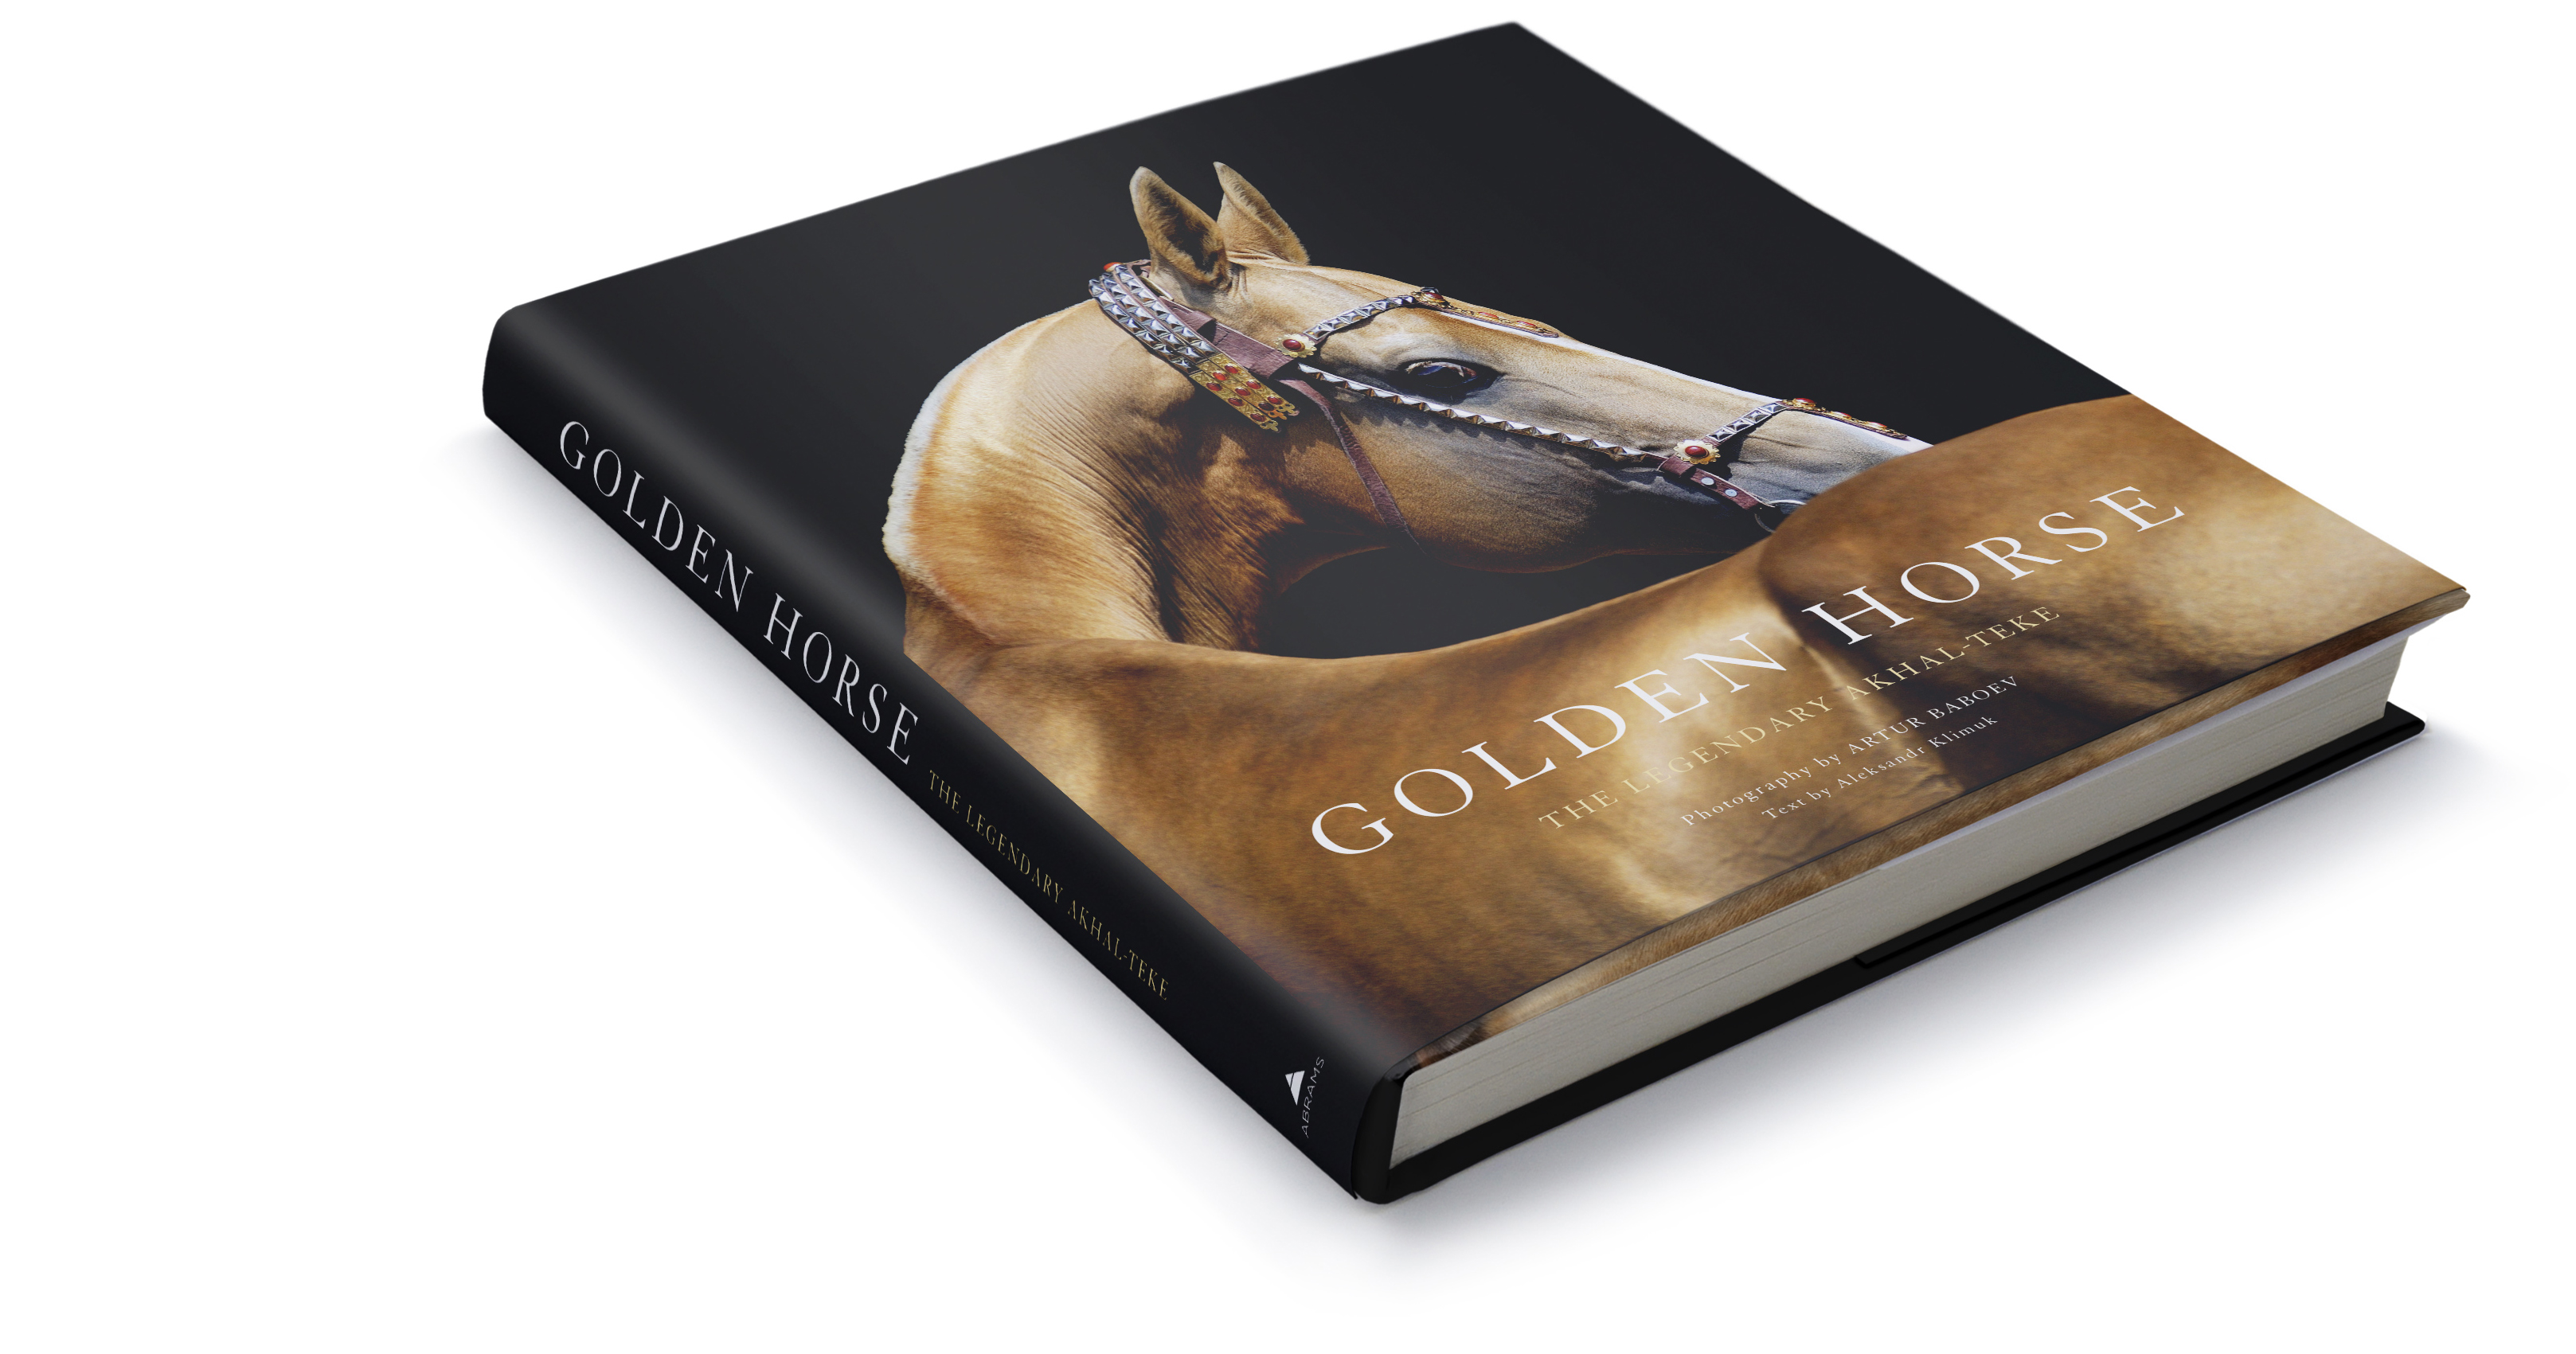 Book. Golden Horse. English edition